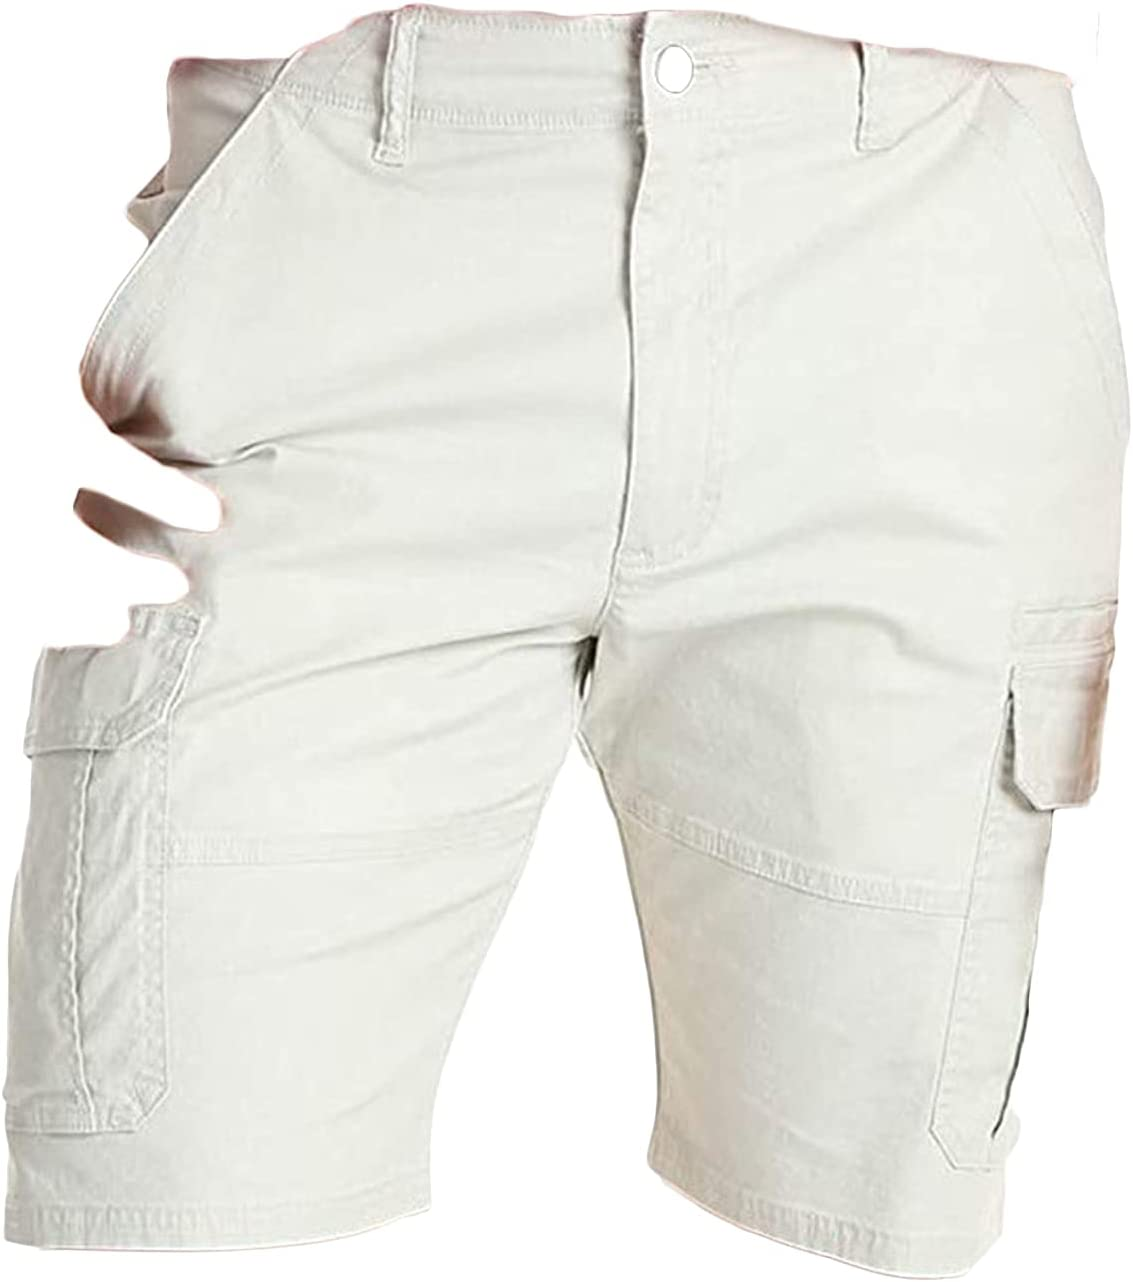 Men's Cotton Casual Cargo Shorts Outdoor Comfy Lightweight Twill Short Multi Pocket Sport Workout Straight Leg Shorts (White,XX-Large)